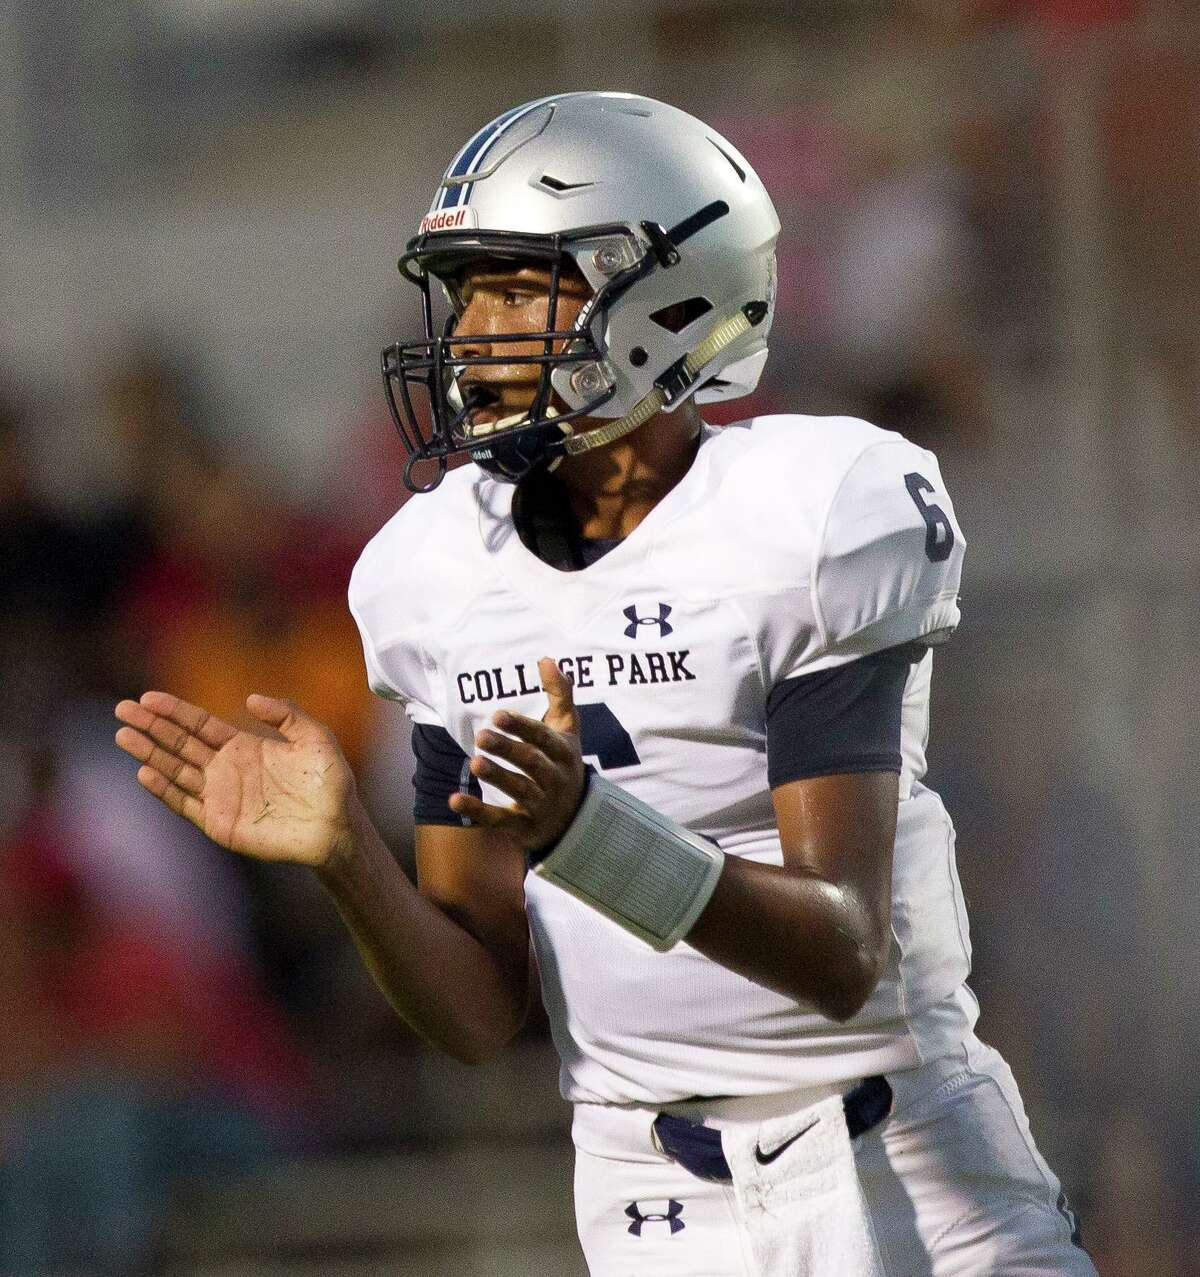 College Park quarterback Ty Buckmon (6) reacts after throwing a 9-yard touchdown pass to tight end Cody Mladenka during the third quarter of a non-district high school football game at W.W. Thorne Stadium, Saturday, Sept. 7, 2019, in Houston.